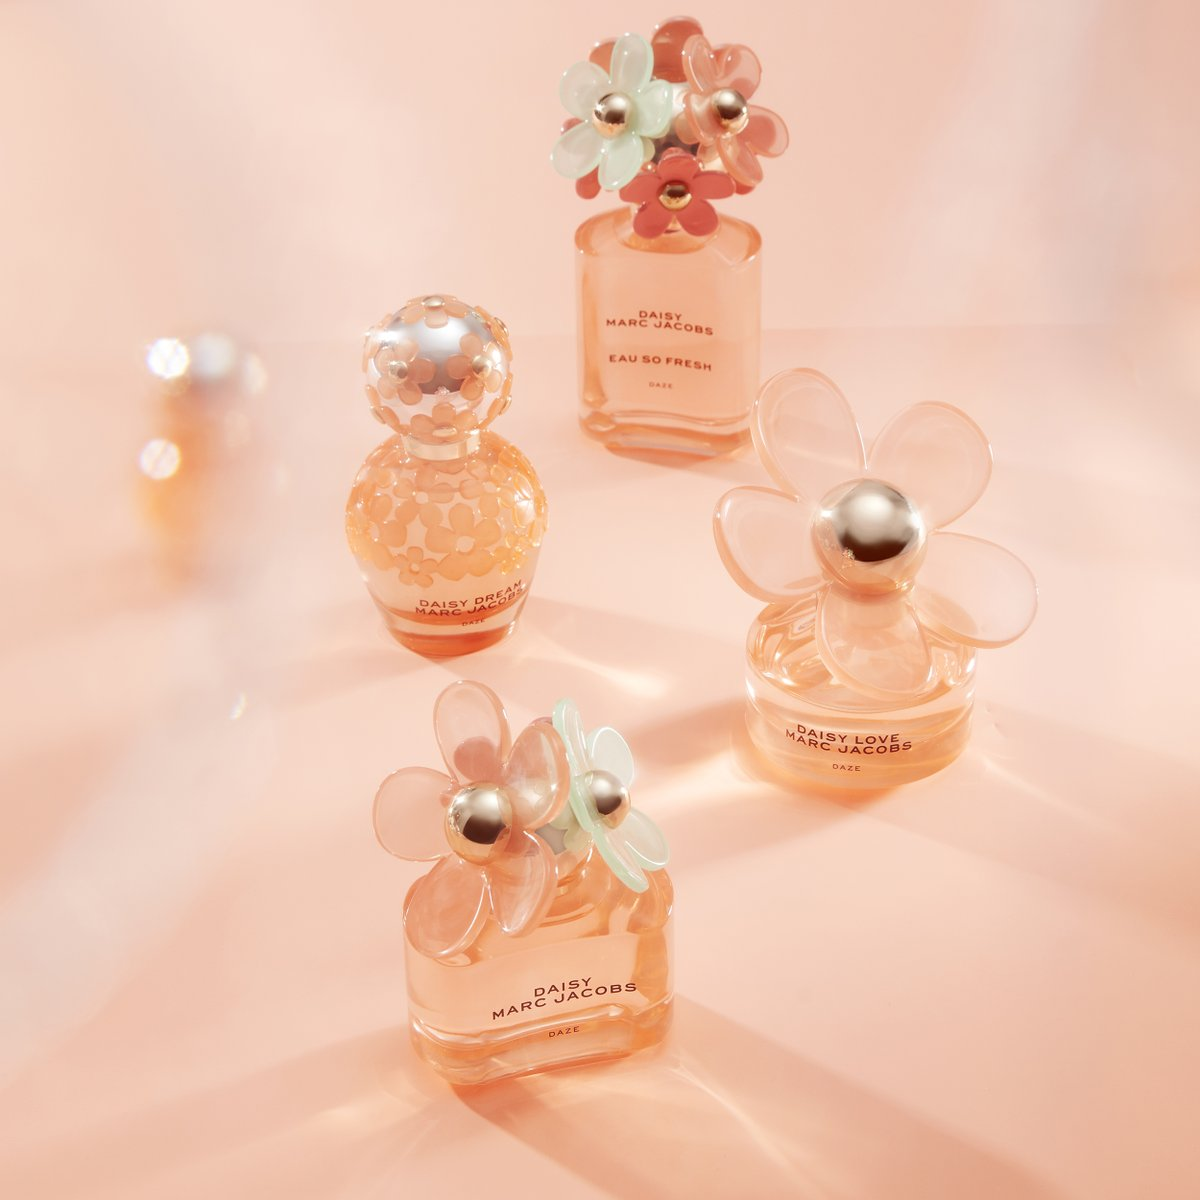 RT to WIN! The new limited edition fragrances from Marc Jacobs are our new favourites! Daisy Daze scents are warm, vibrant and full of fun! Today we're giving away the set to one lucky winner!